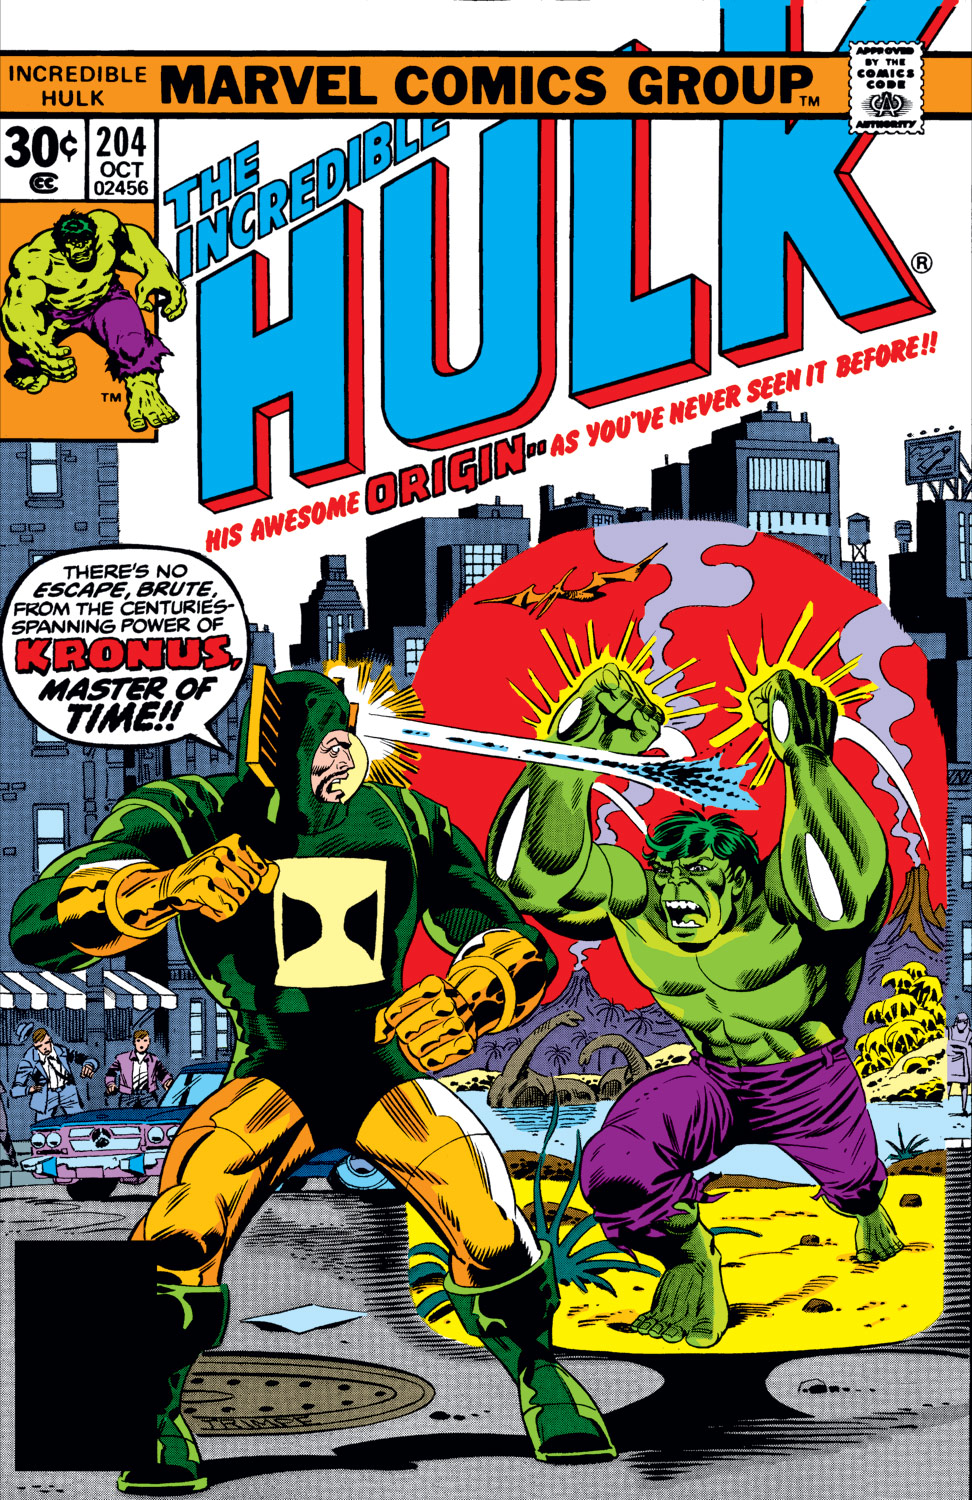 Incredible Hulk (1962) #204